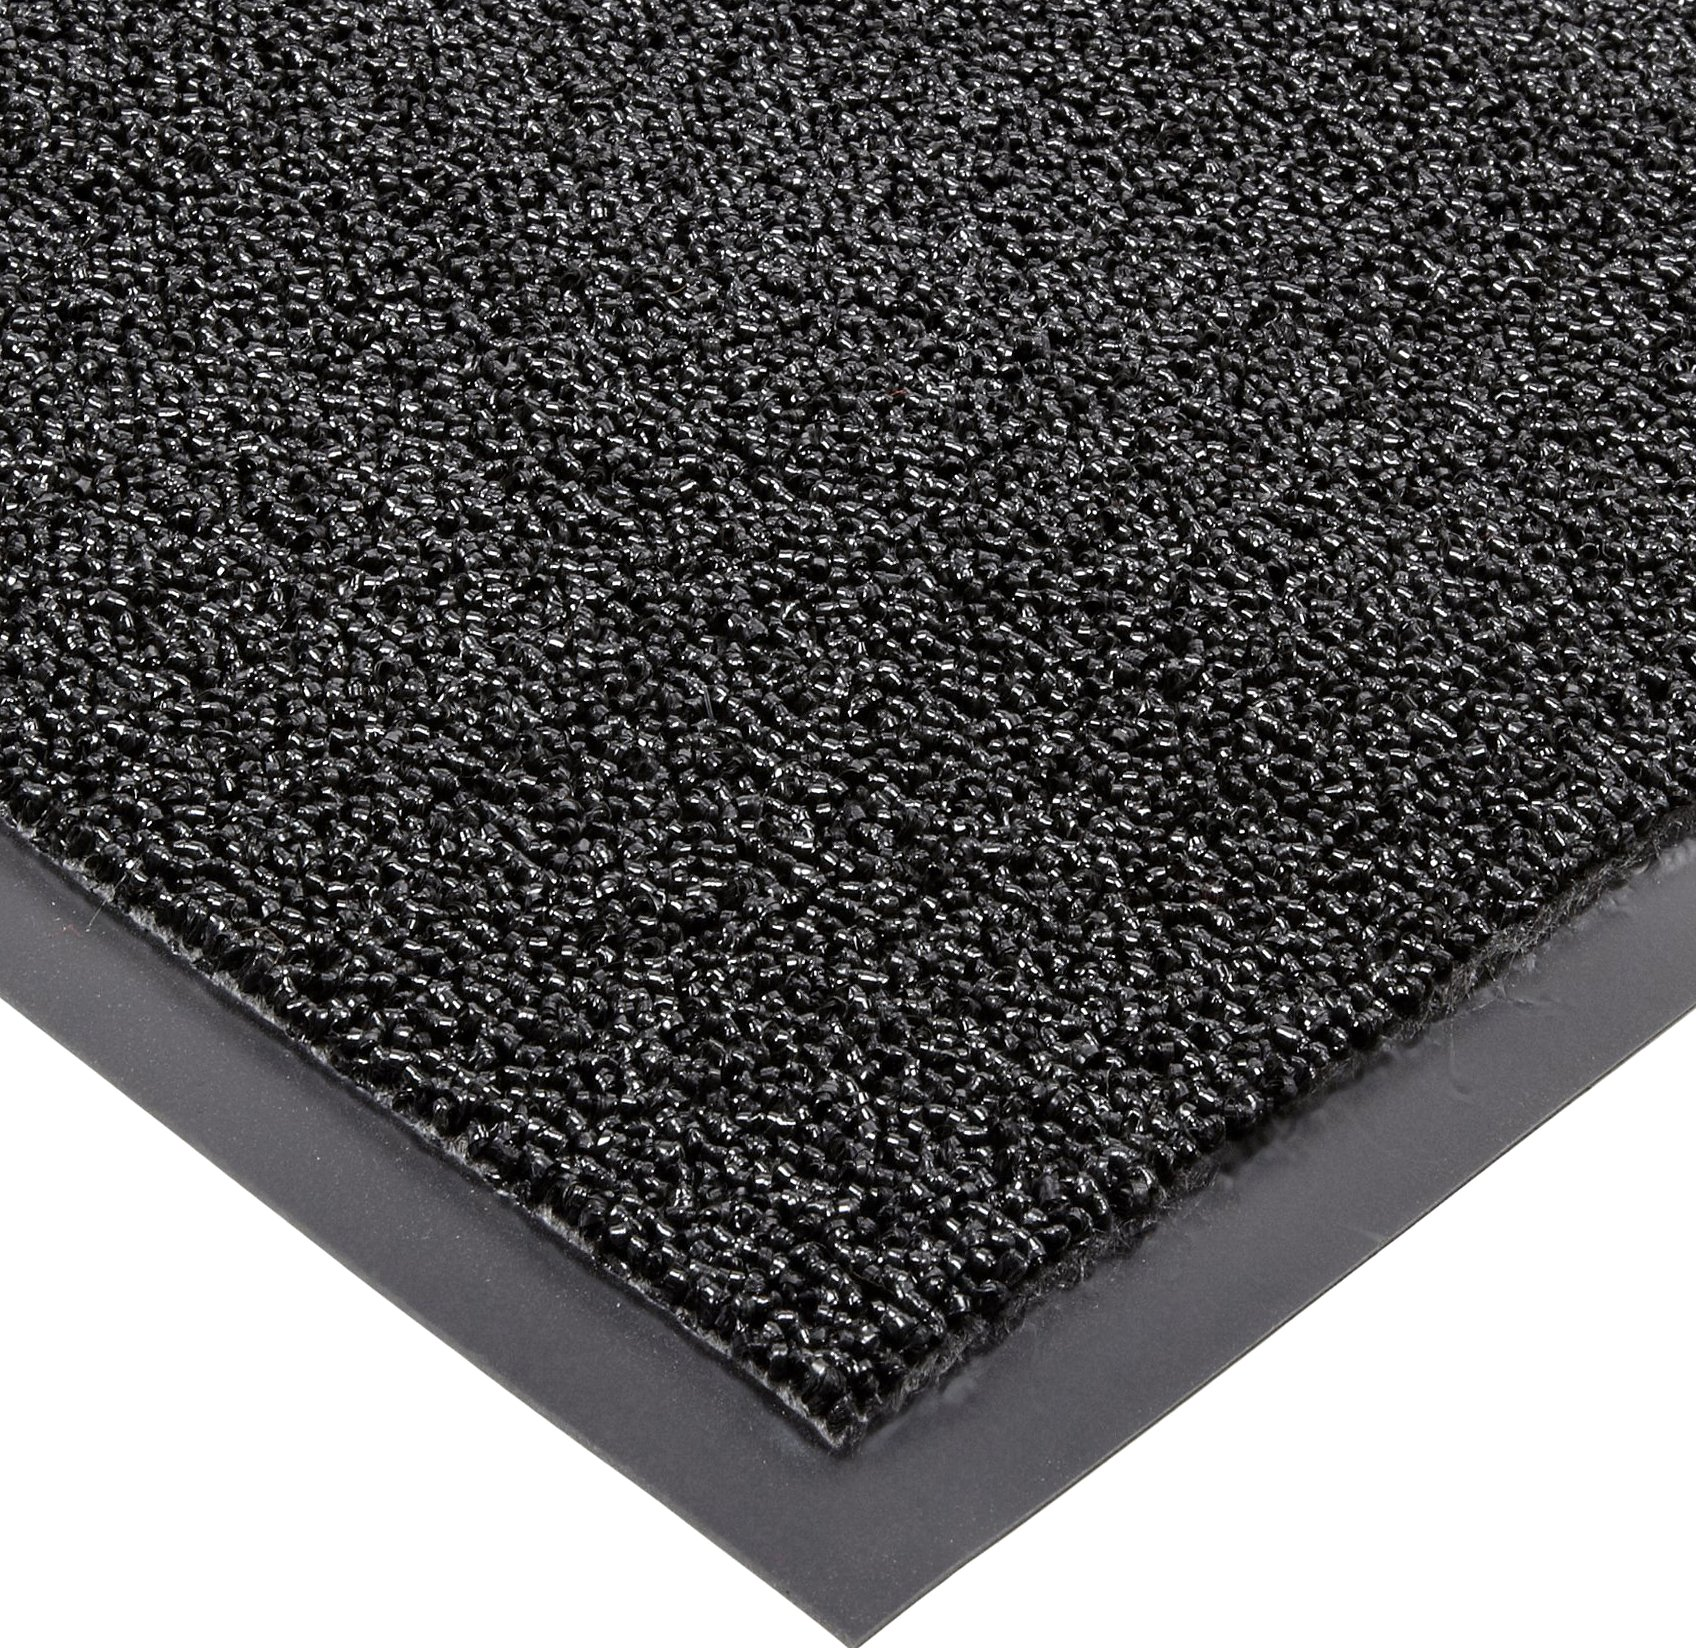 Notrax Non-Absorbent Fiber 231 Prelude Entrance Mat, for Outdoor and Heavy Traffic Areas, 3' Width x 6' Length x 1/4'' Thickness, Black